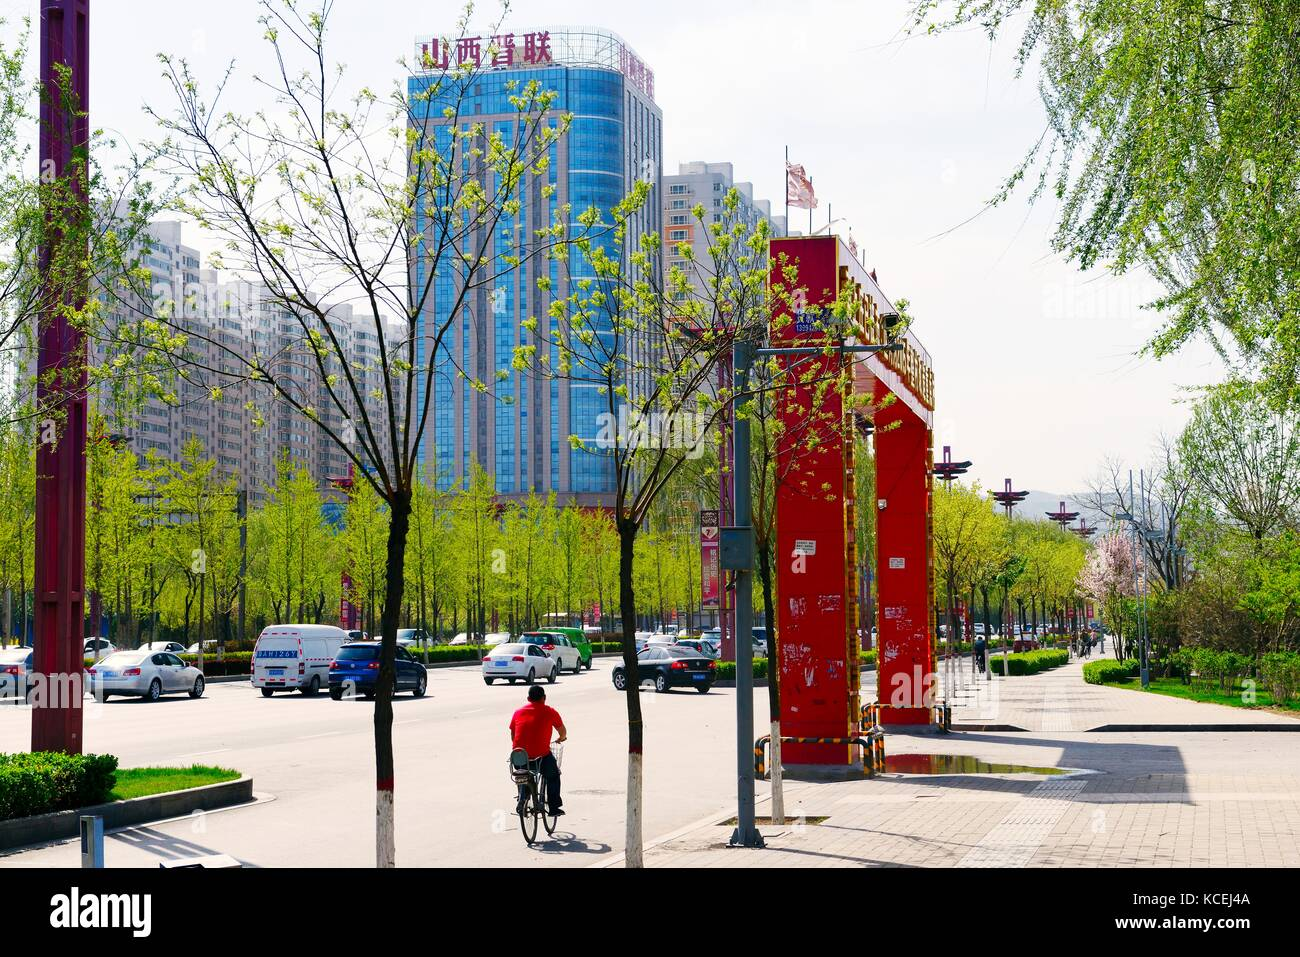 Inner city redevelopment Taiyuan city, Shanxi Province, China. Changfeng West Street. New highway in modernised - Stock Image